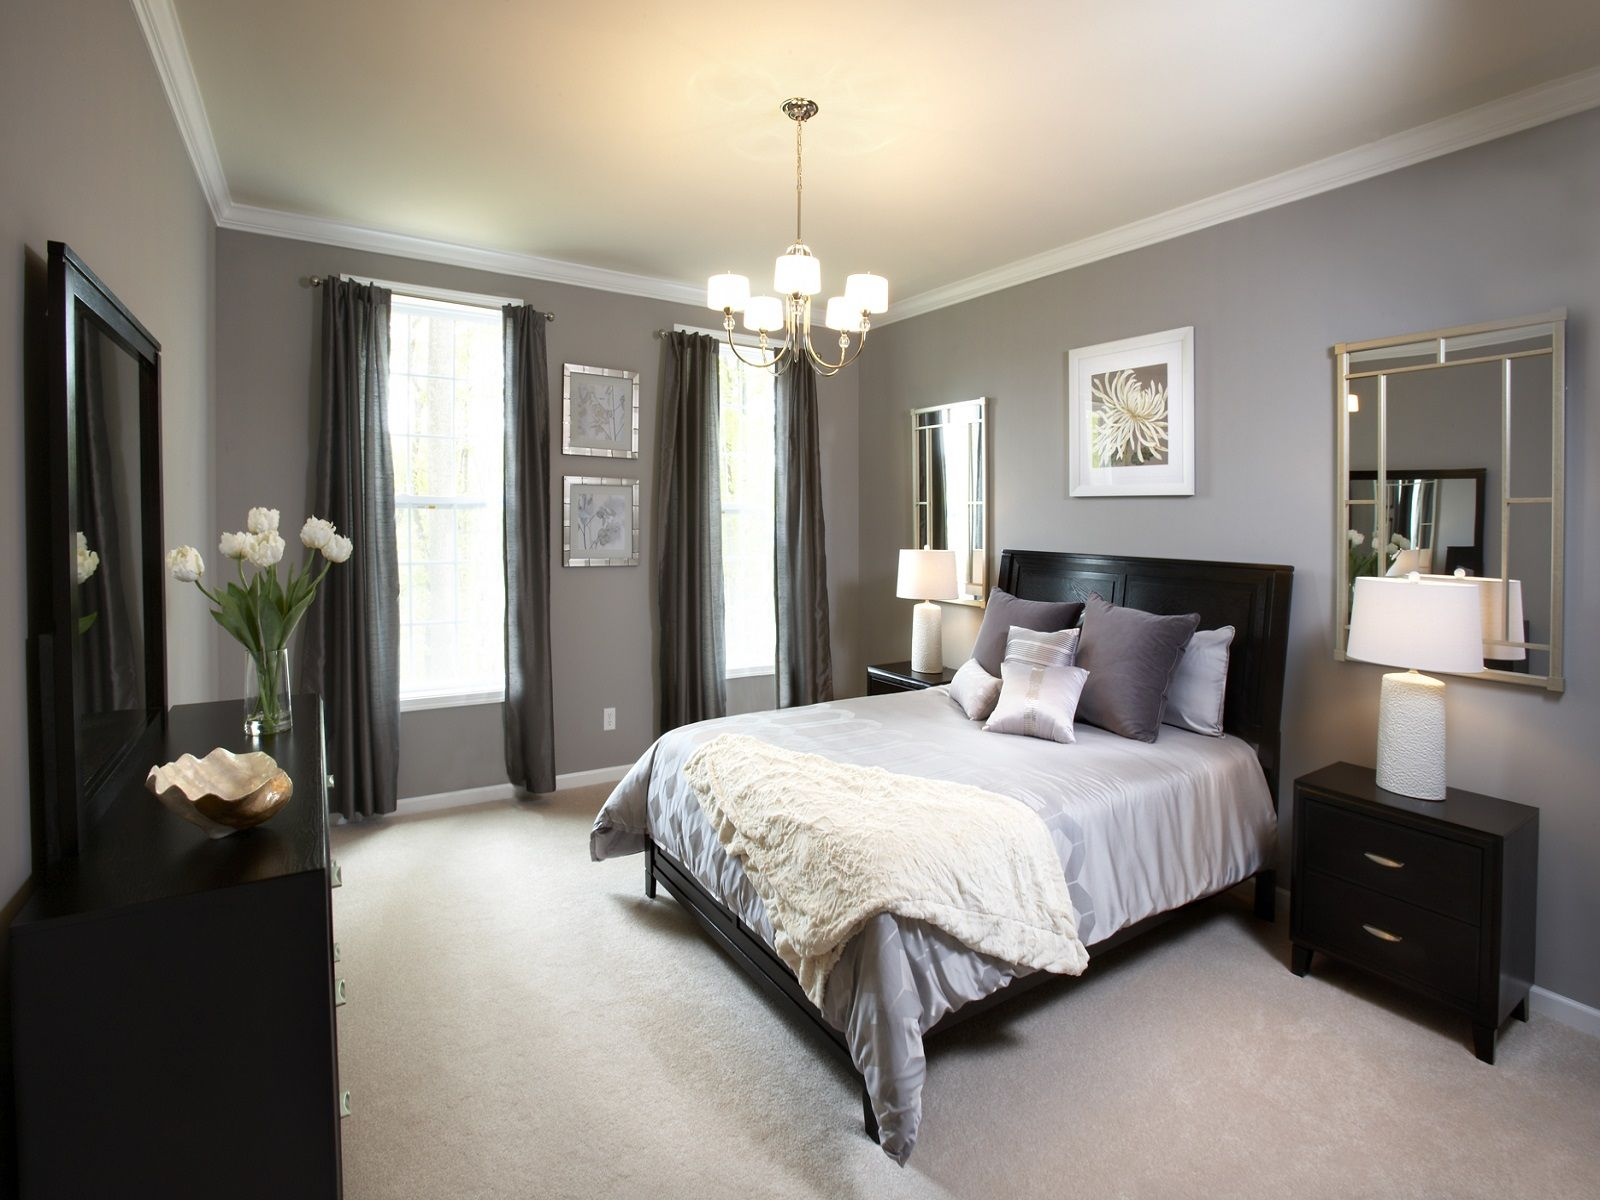 25 best ideas about black bedroom furniture on pinterest purple black bedroom black bedroom decor and dark furniture bedroom - Black Bedroom Furniture Decorating Ideas